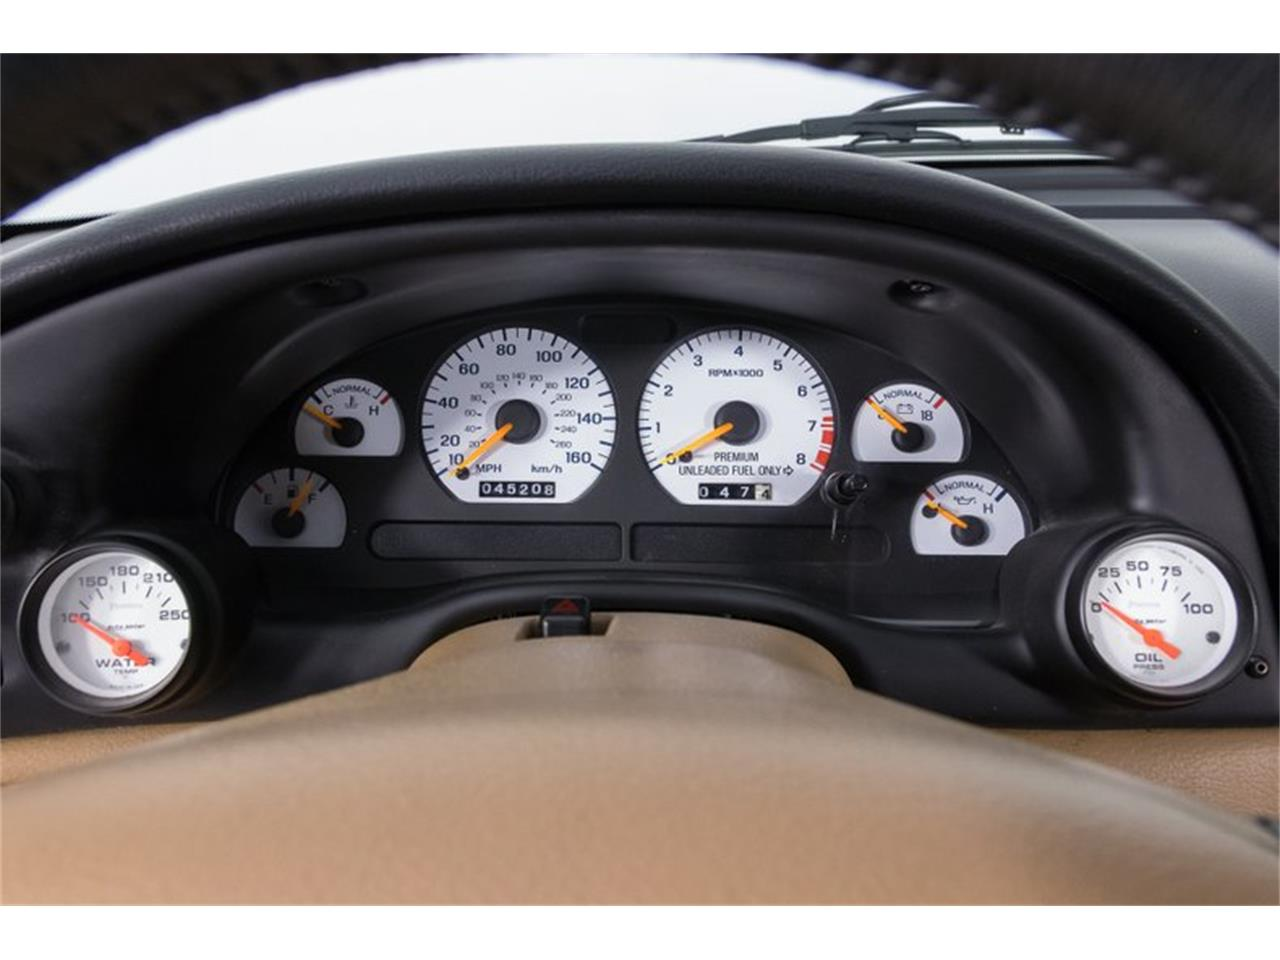 Large Picture of '97 Ford Mustang located in St. Charles Missouri Offered by Fast Lane Classic Cars Inc. - Q83F